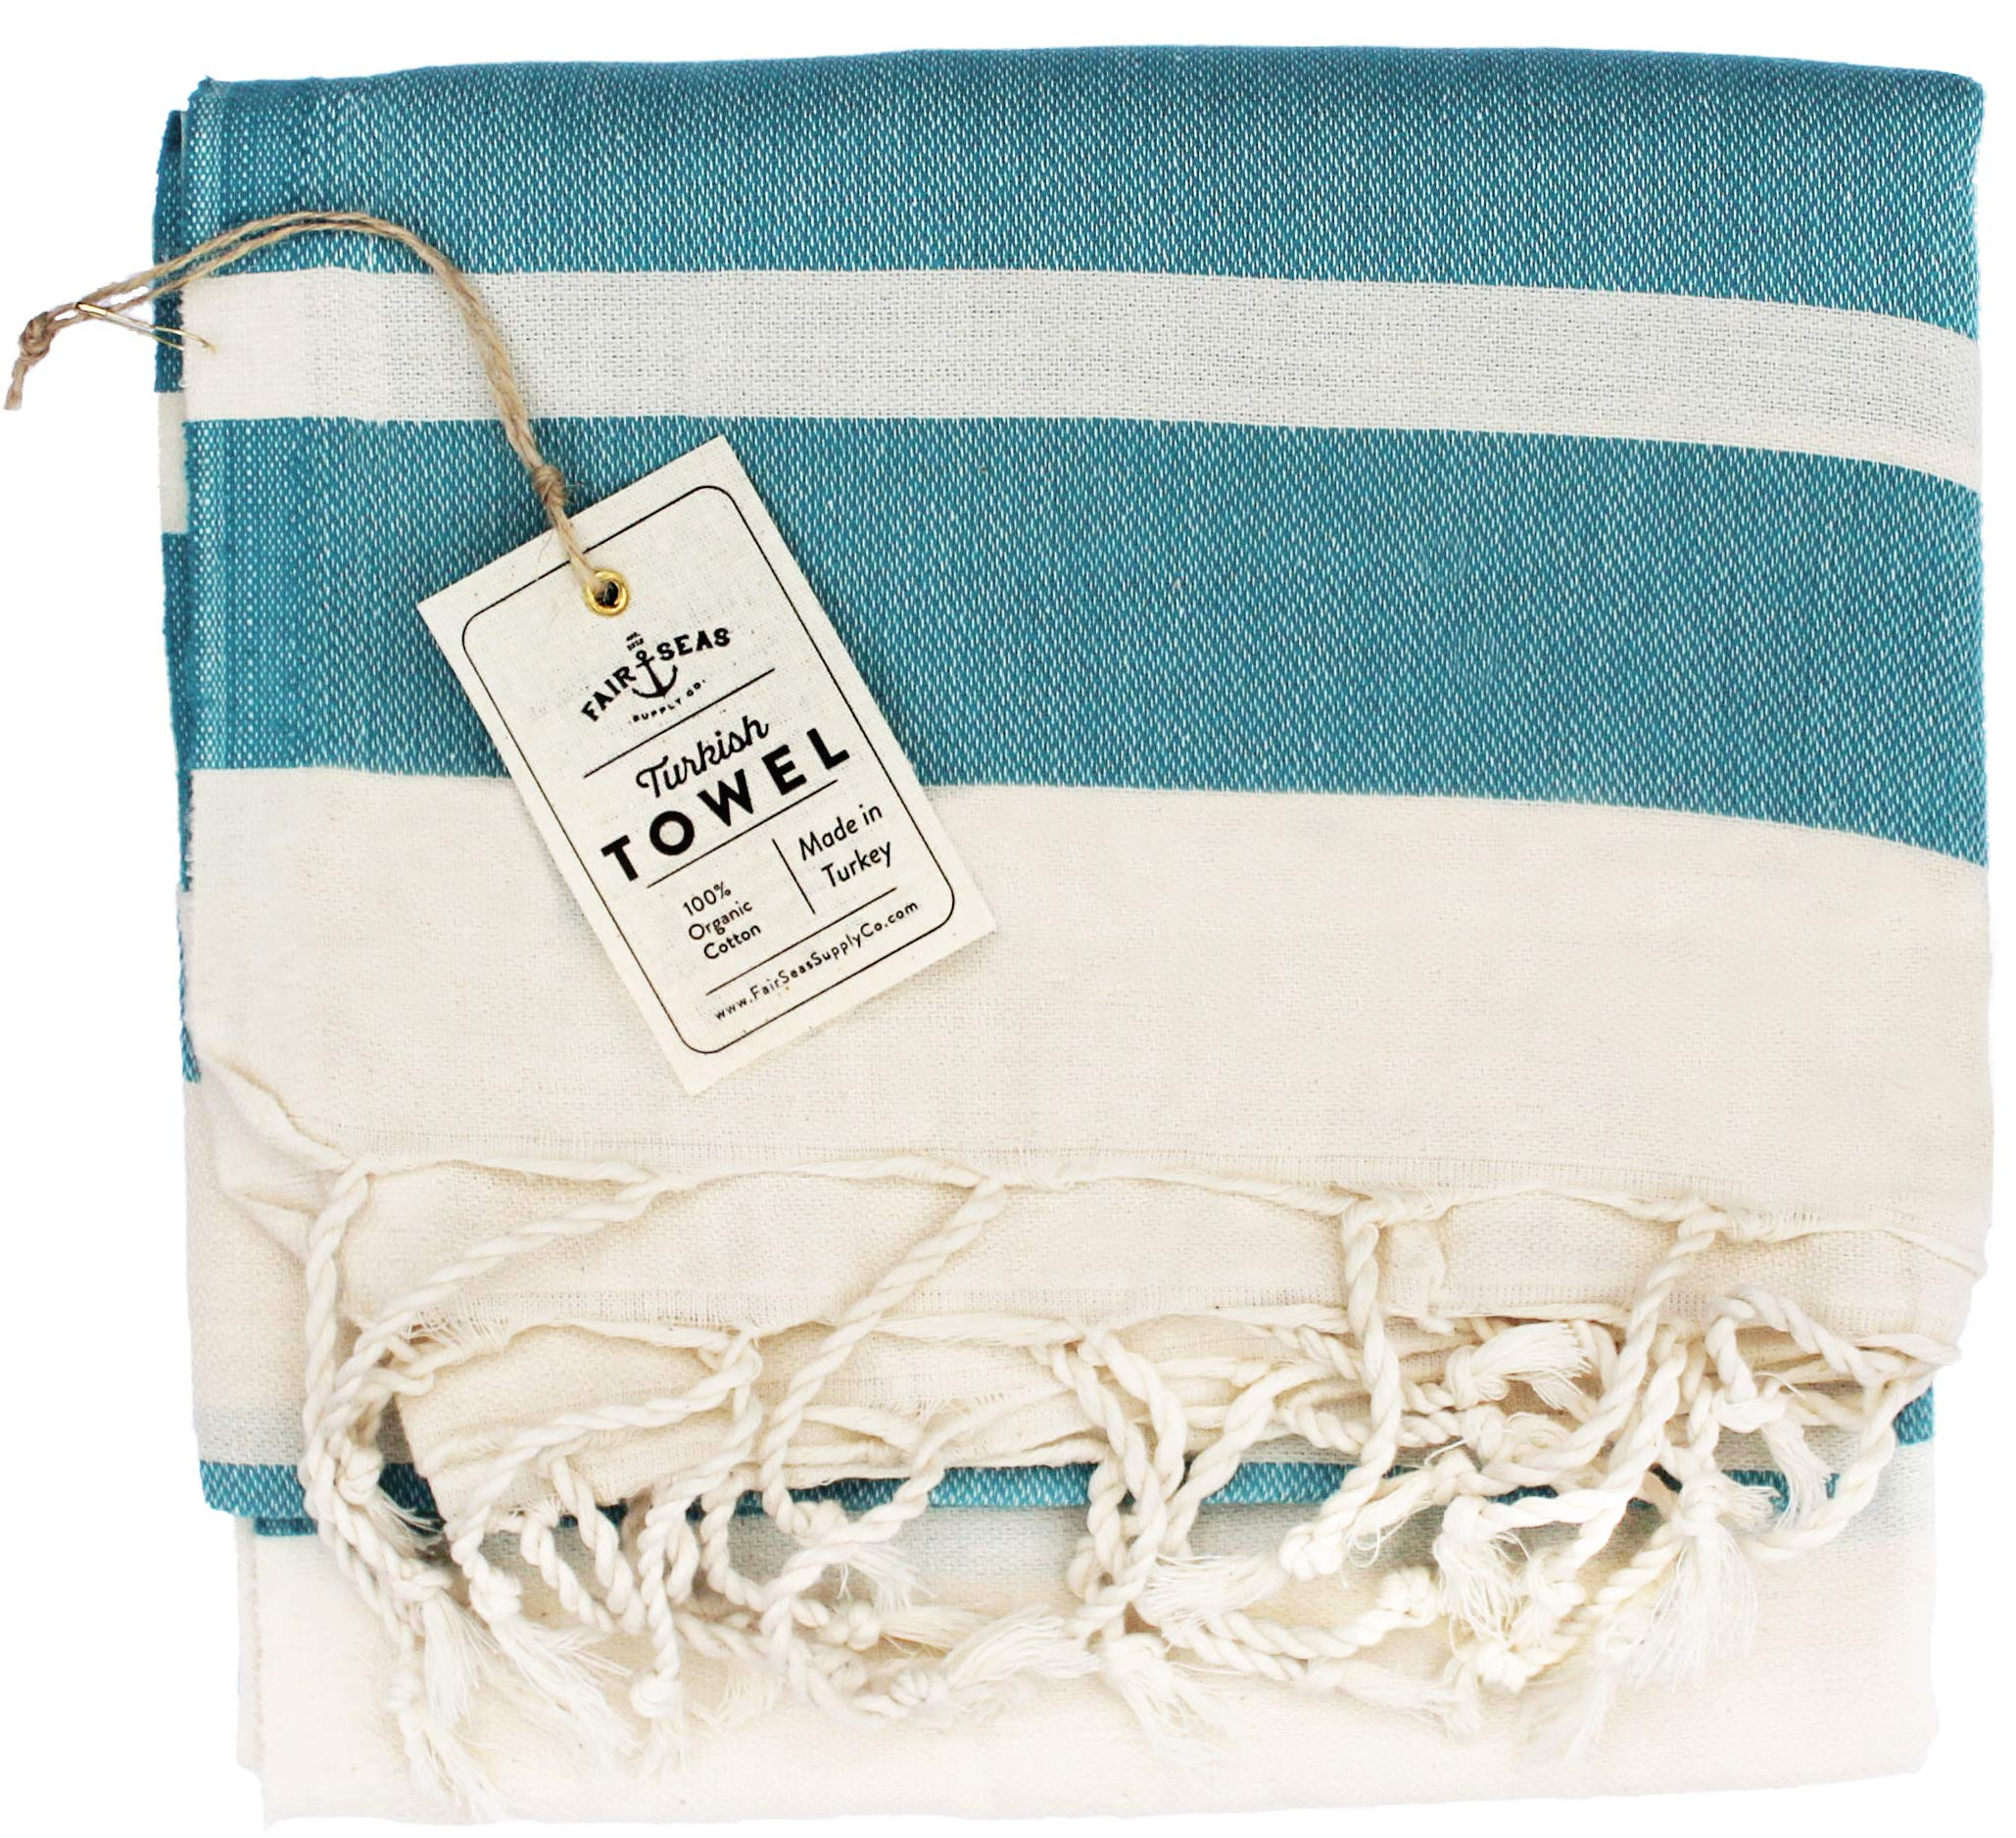 Fair Seas Supply Co. Turkish Towel, Peshtemal Towel - 100% Organic Turkish Cotton - Quick Dry and Lightweight, 39'' x 71'' Large (Caribbean Blue)